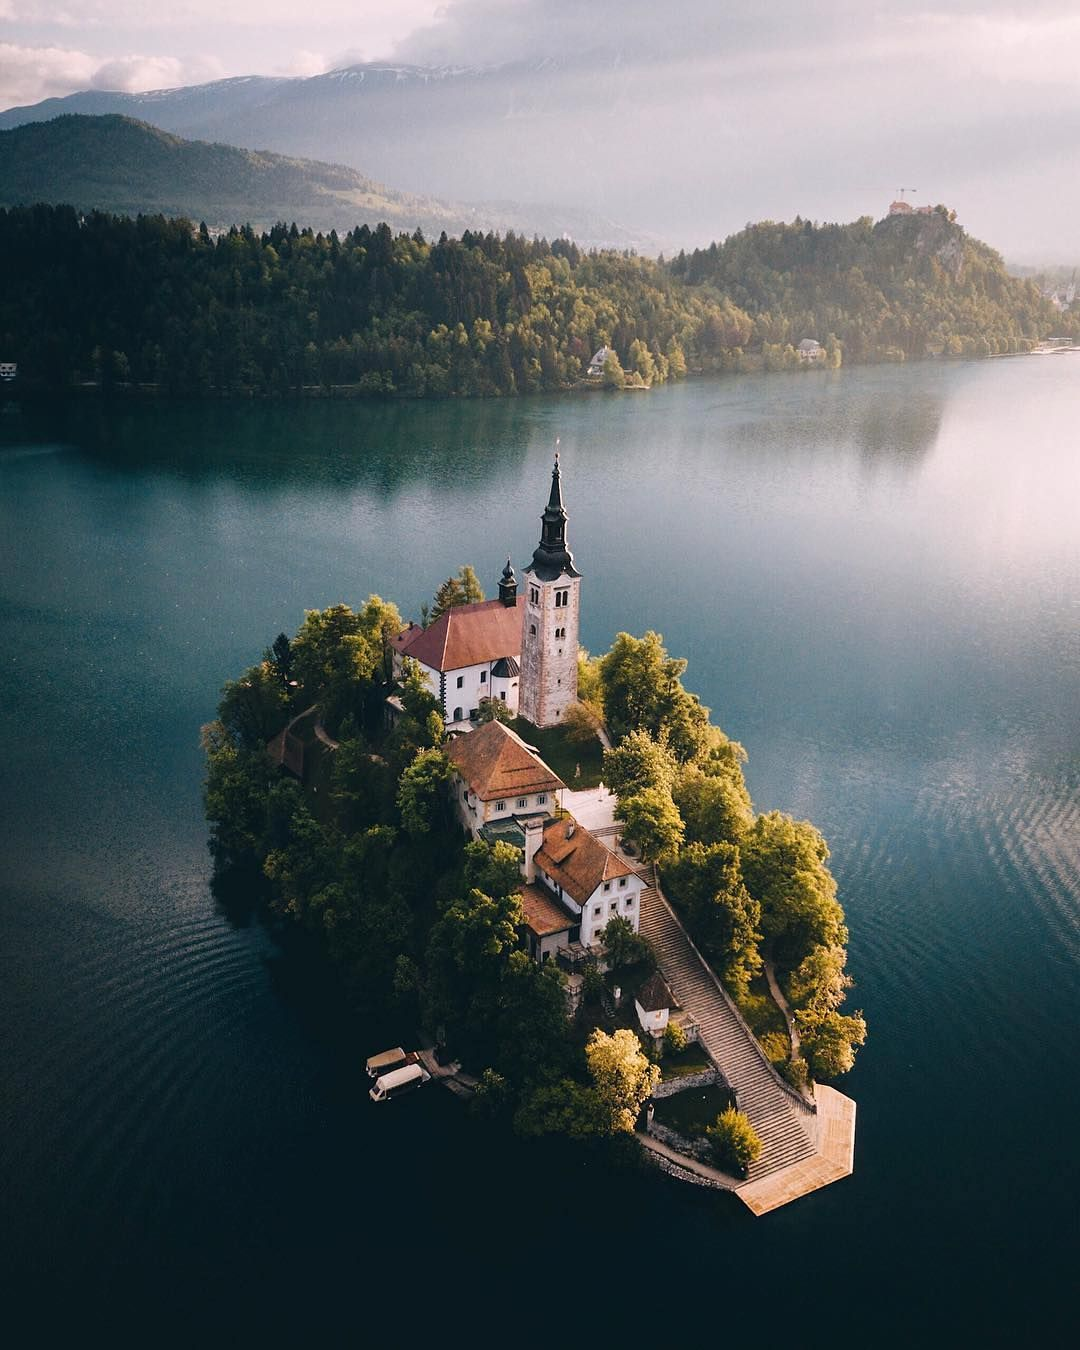 A Stunning Shot Of Bled Island Which Sits Within Lake Bled The Island Has Several Buildings The Main One Being The Pilgr Lake Bled Instagram Places To Travel Beautiful photo church on bled island